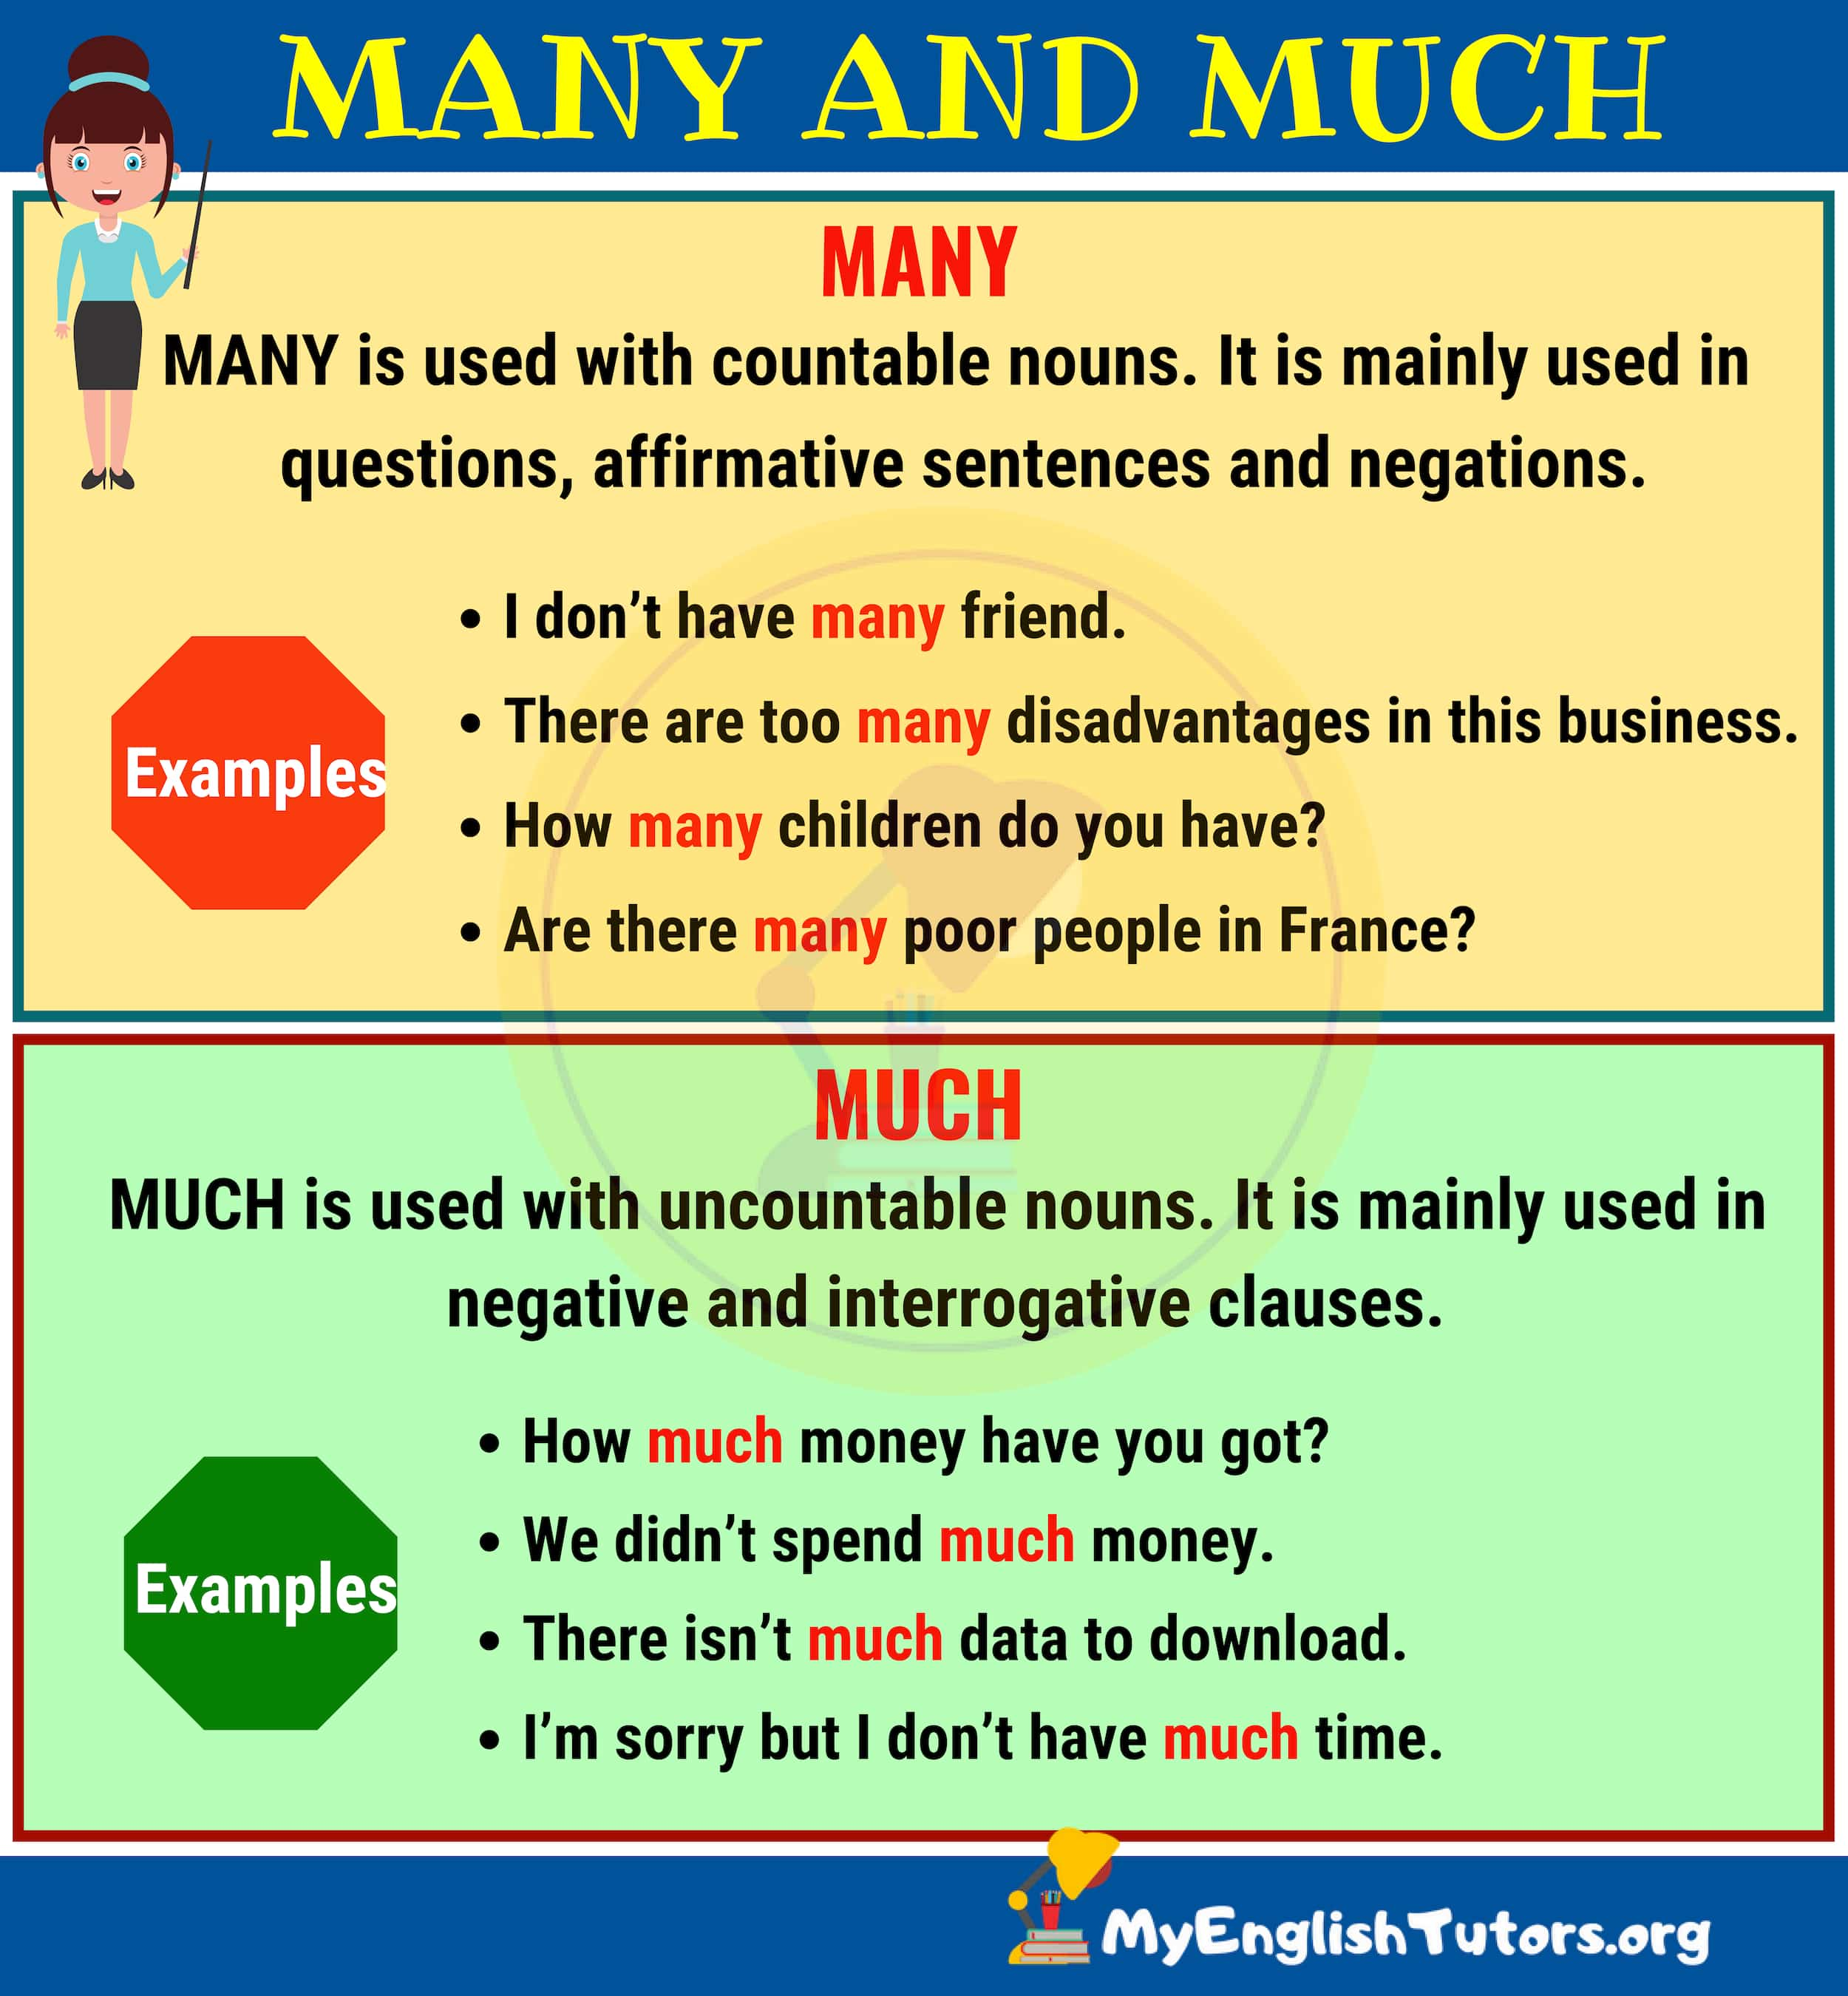 When to Use MUCH vs MANY in English